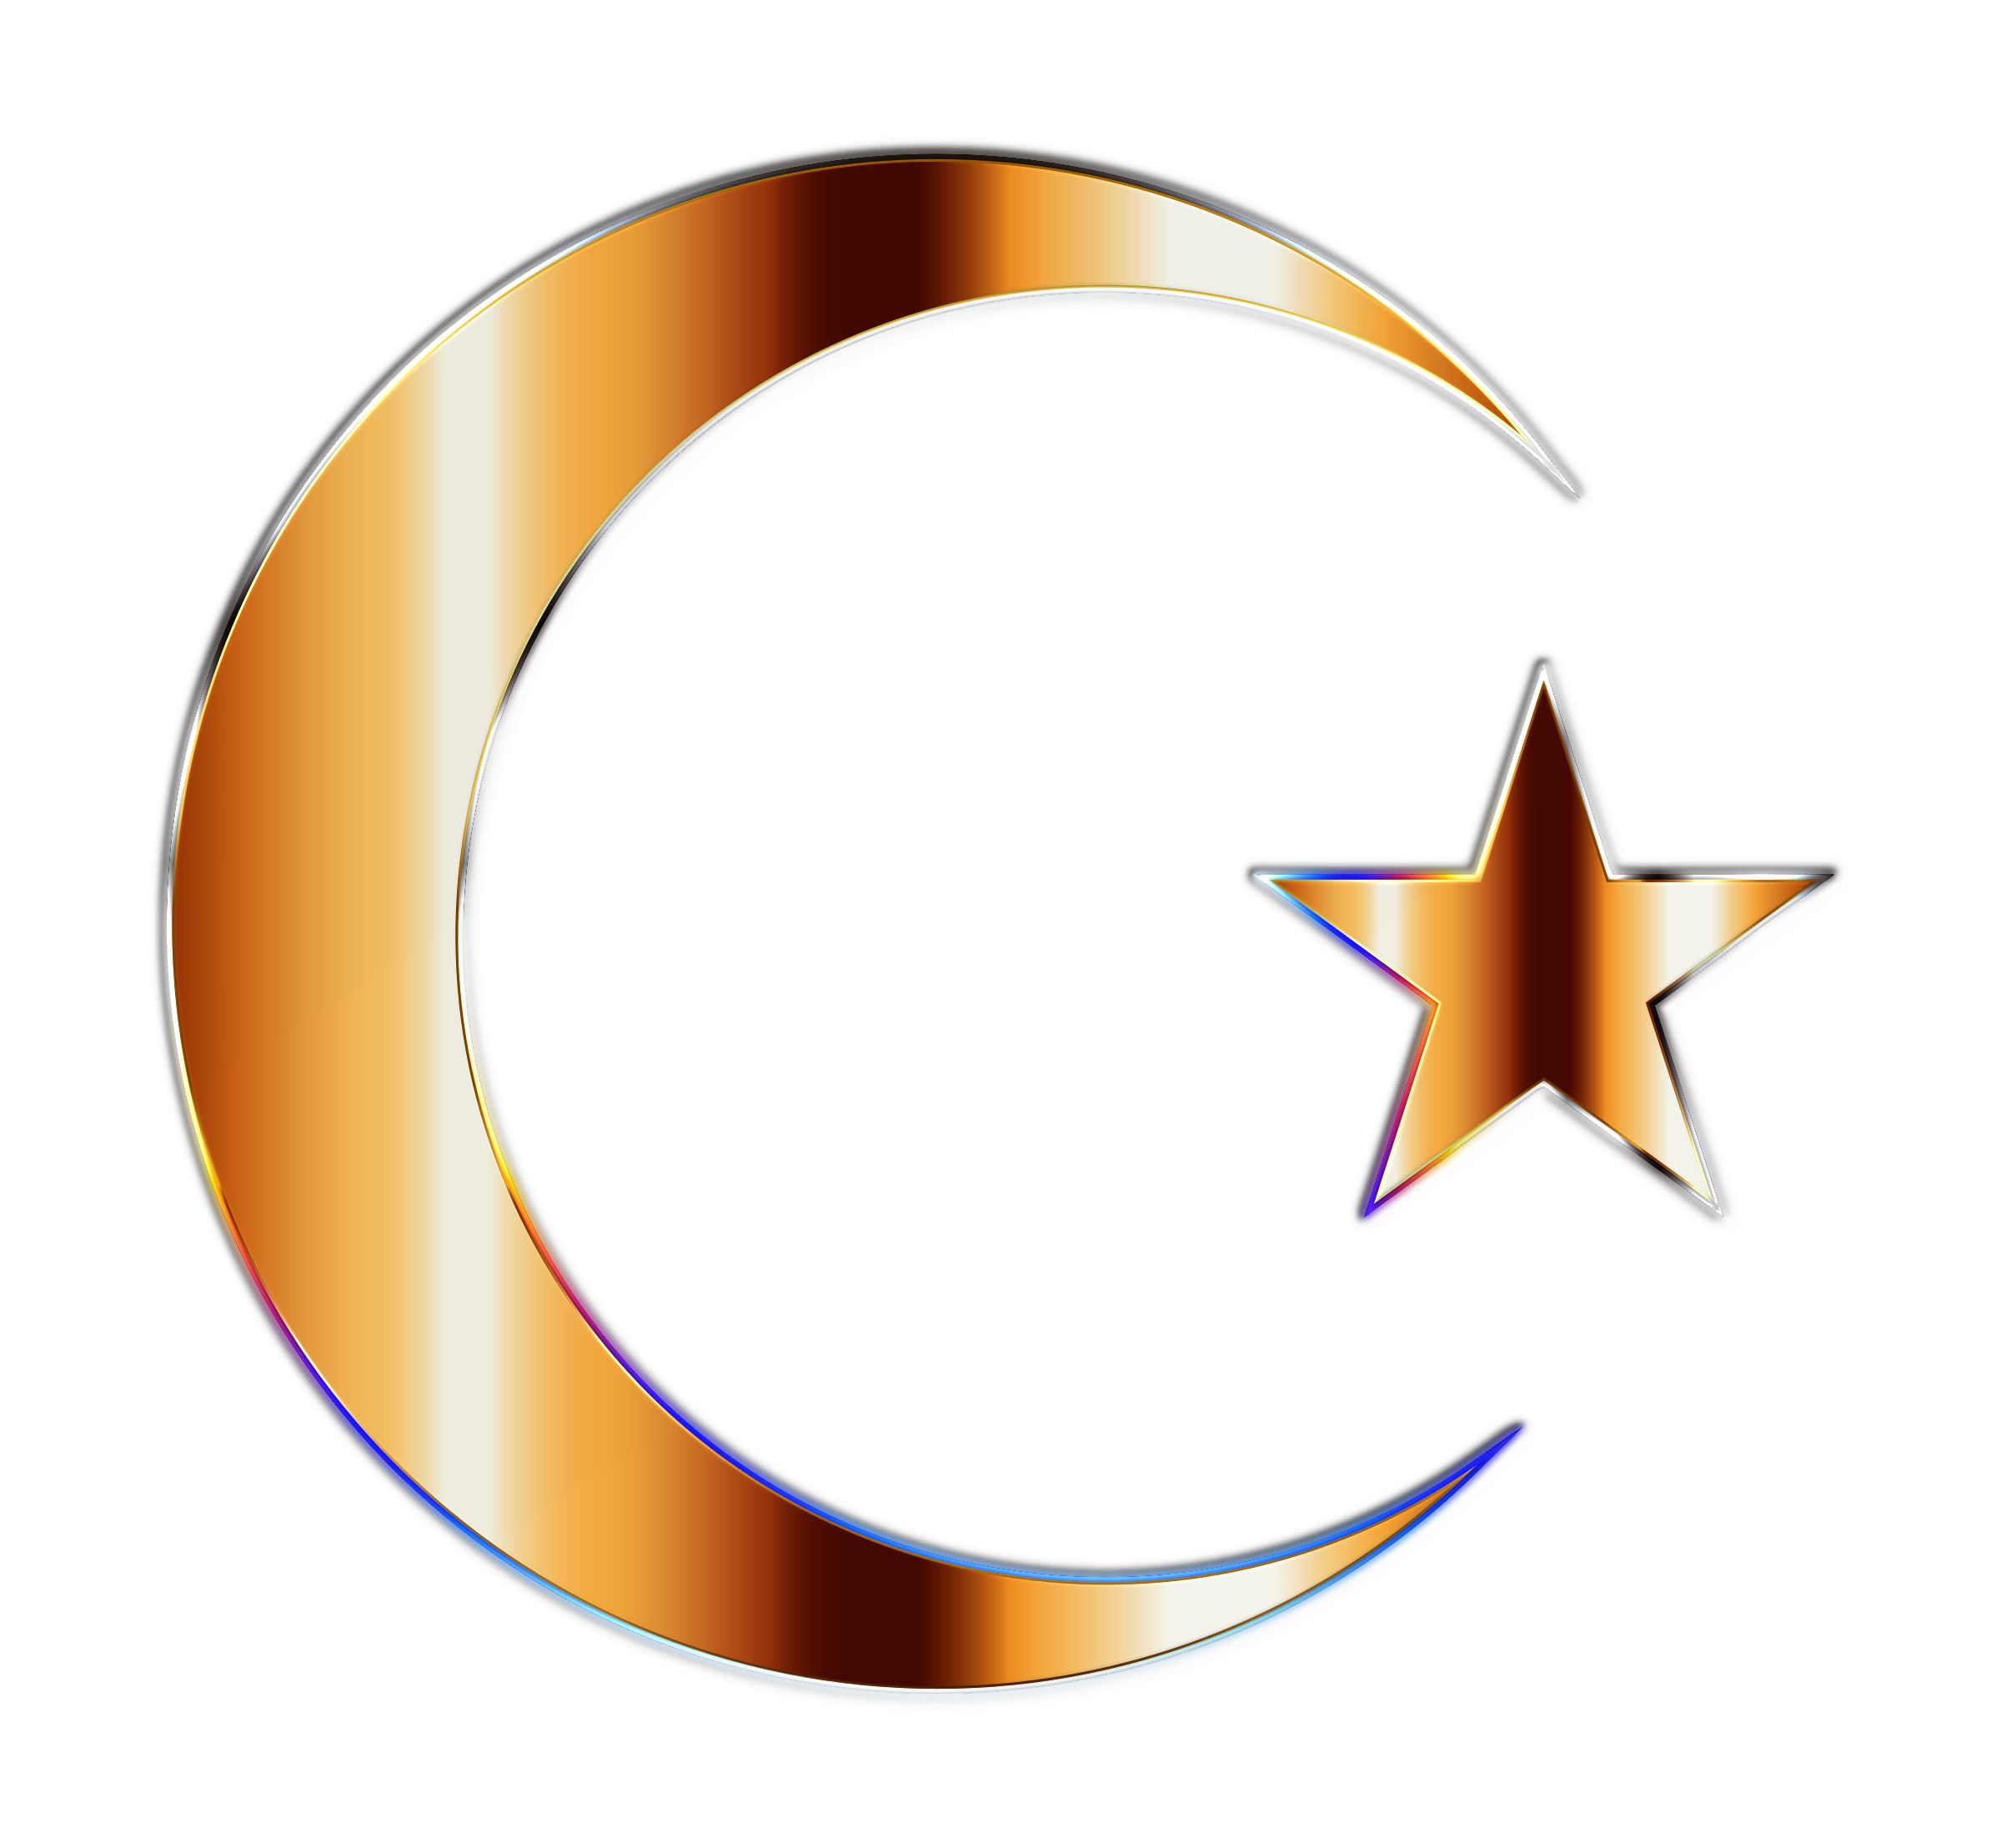 Clipart - Golden Crescent Moon And Star